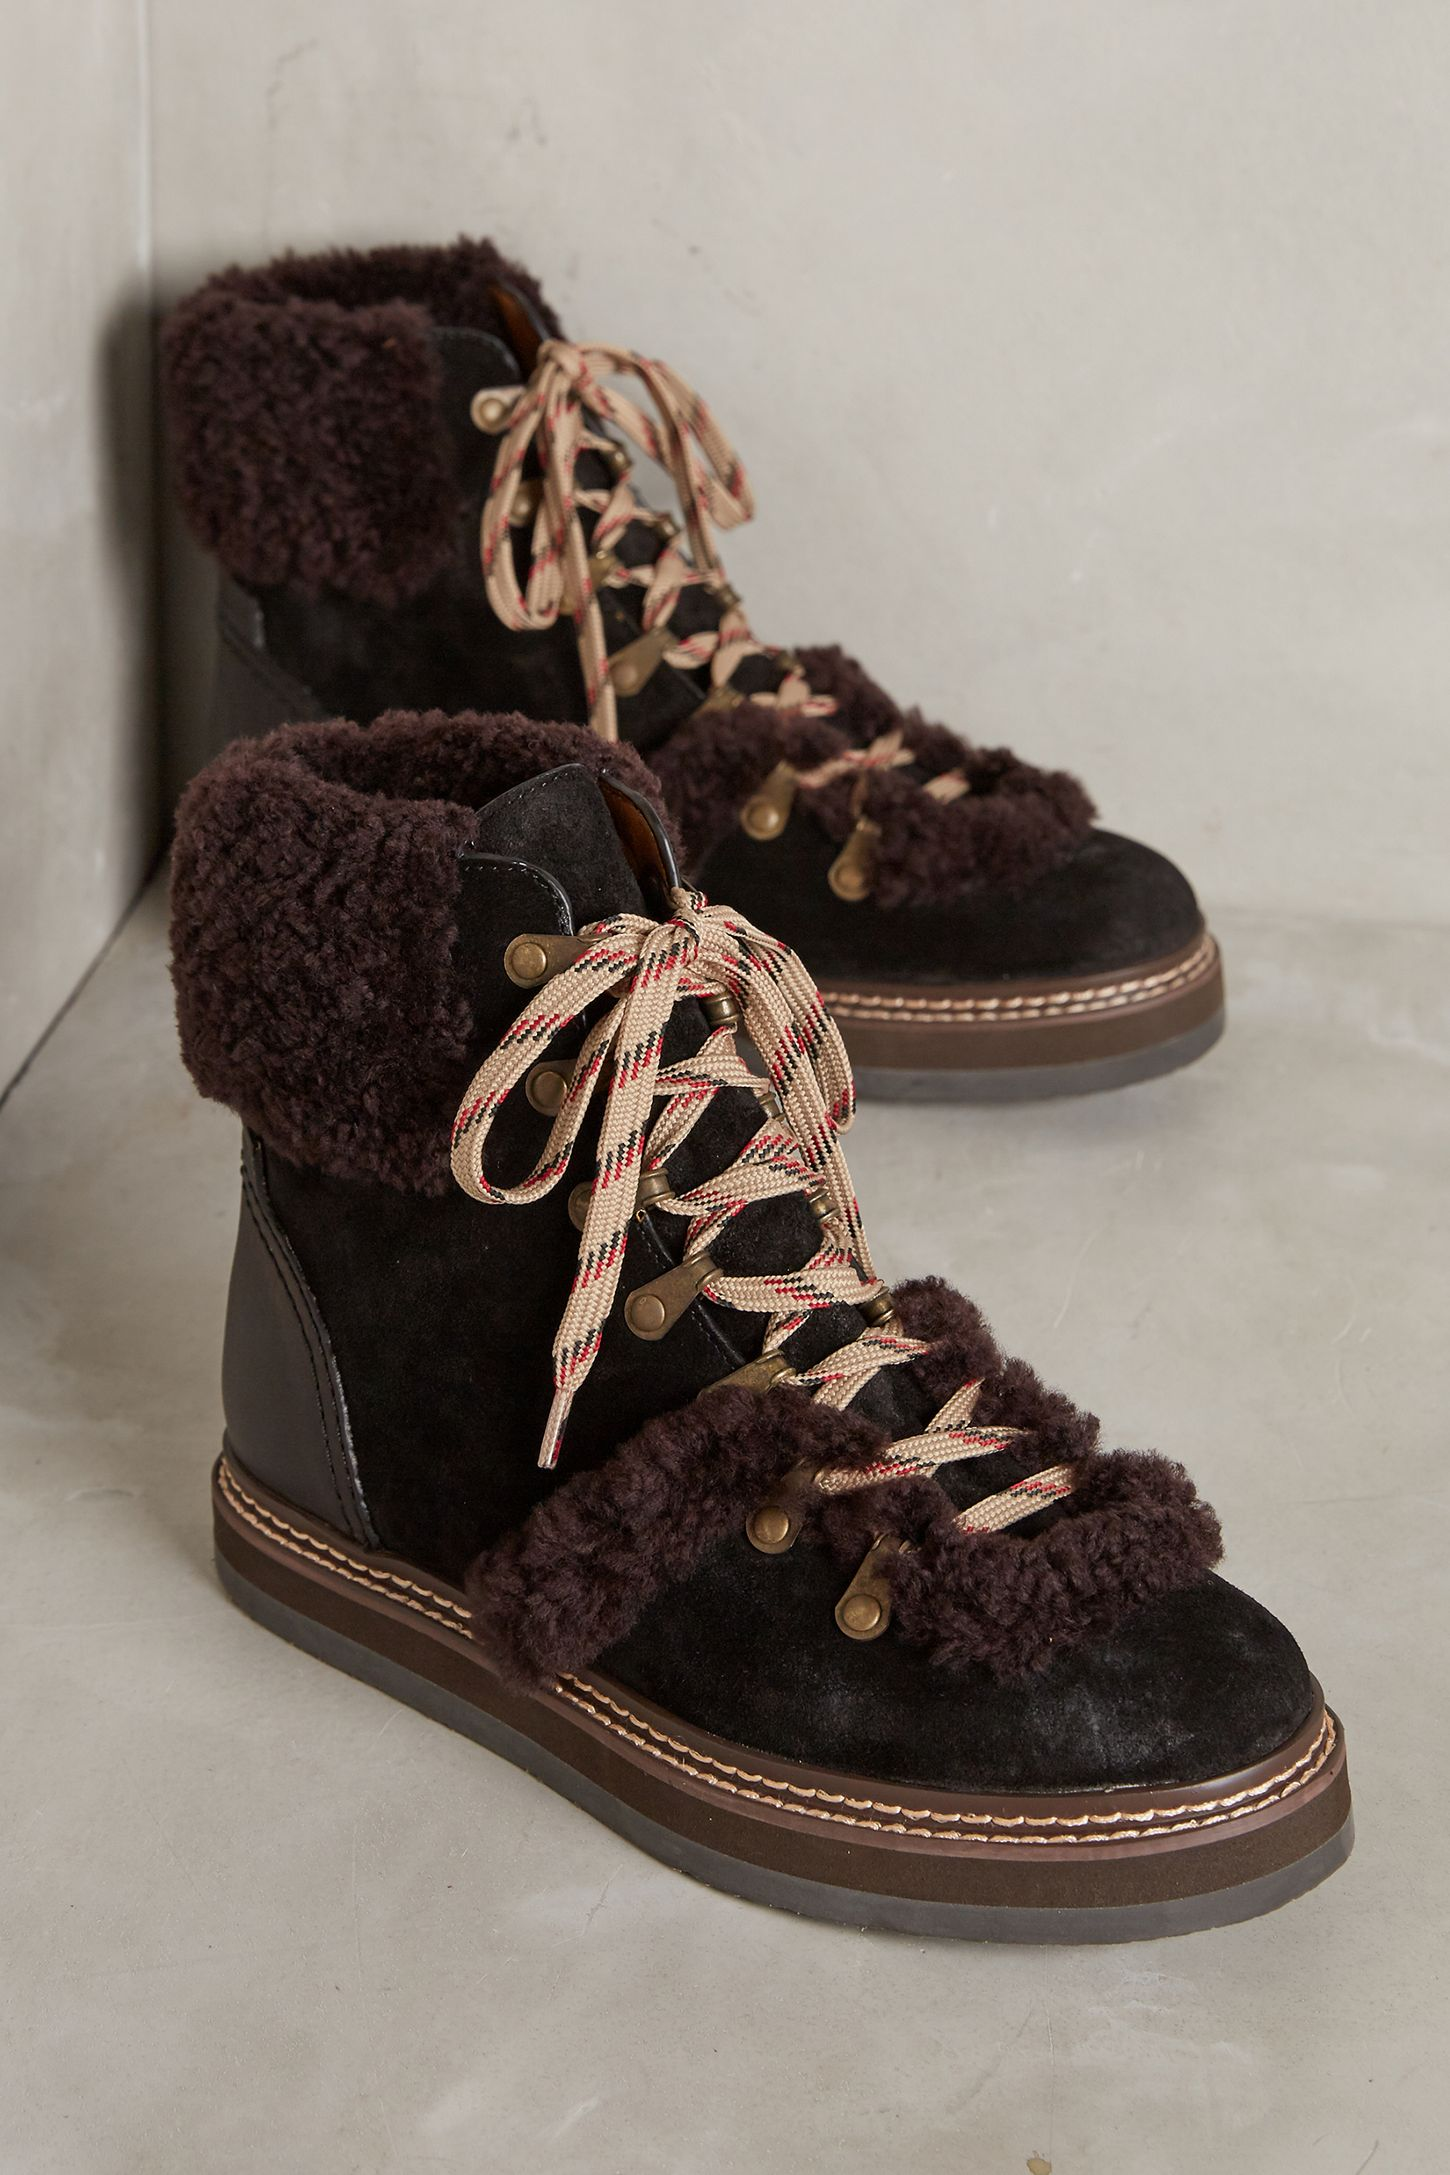 429050de992e See by Chloe Shearling Lace-Up Boots